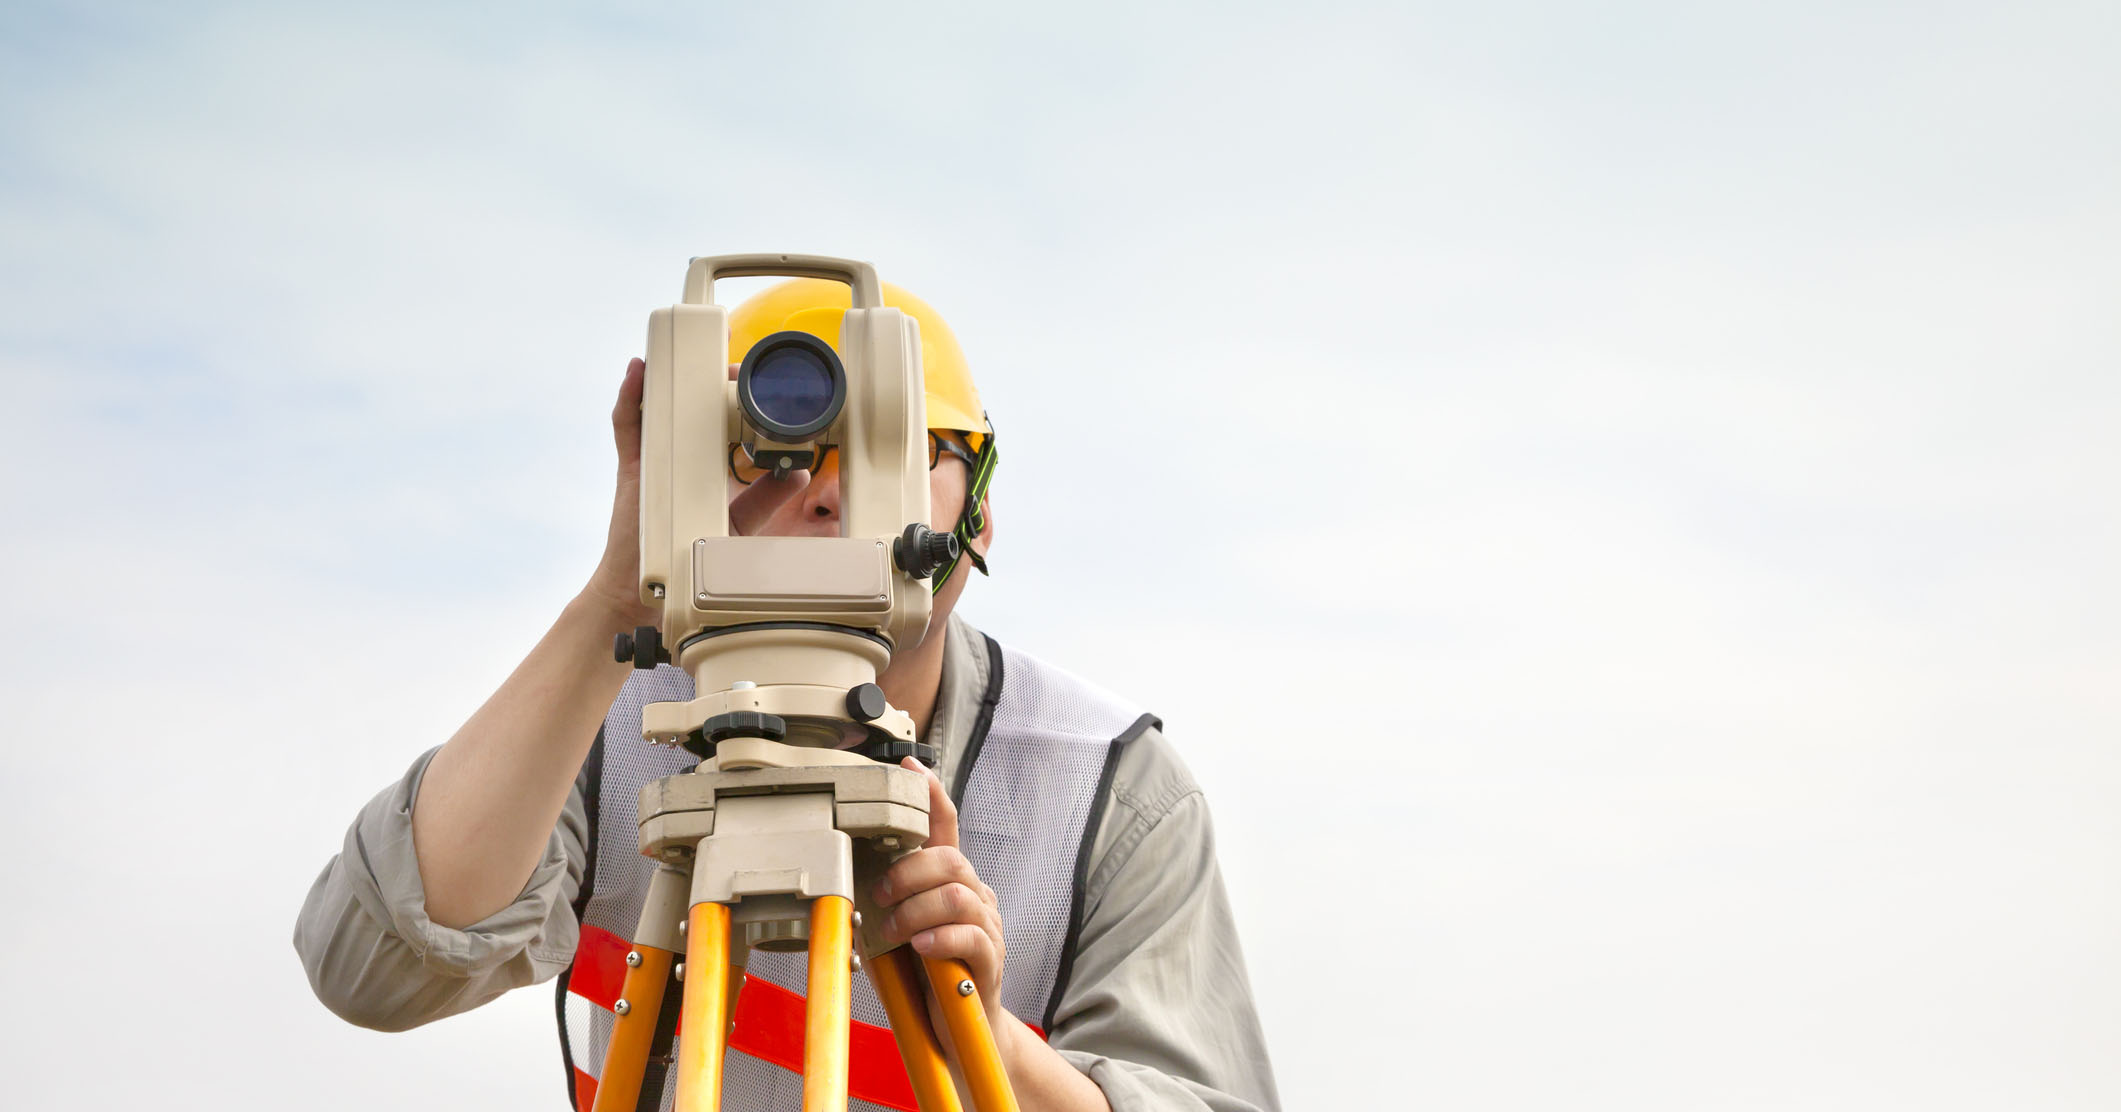 The 3 Most Important Skills That a Land Surveyor Should Posses